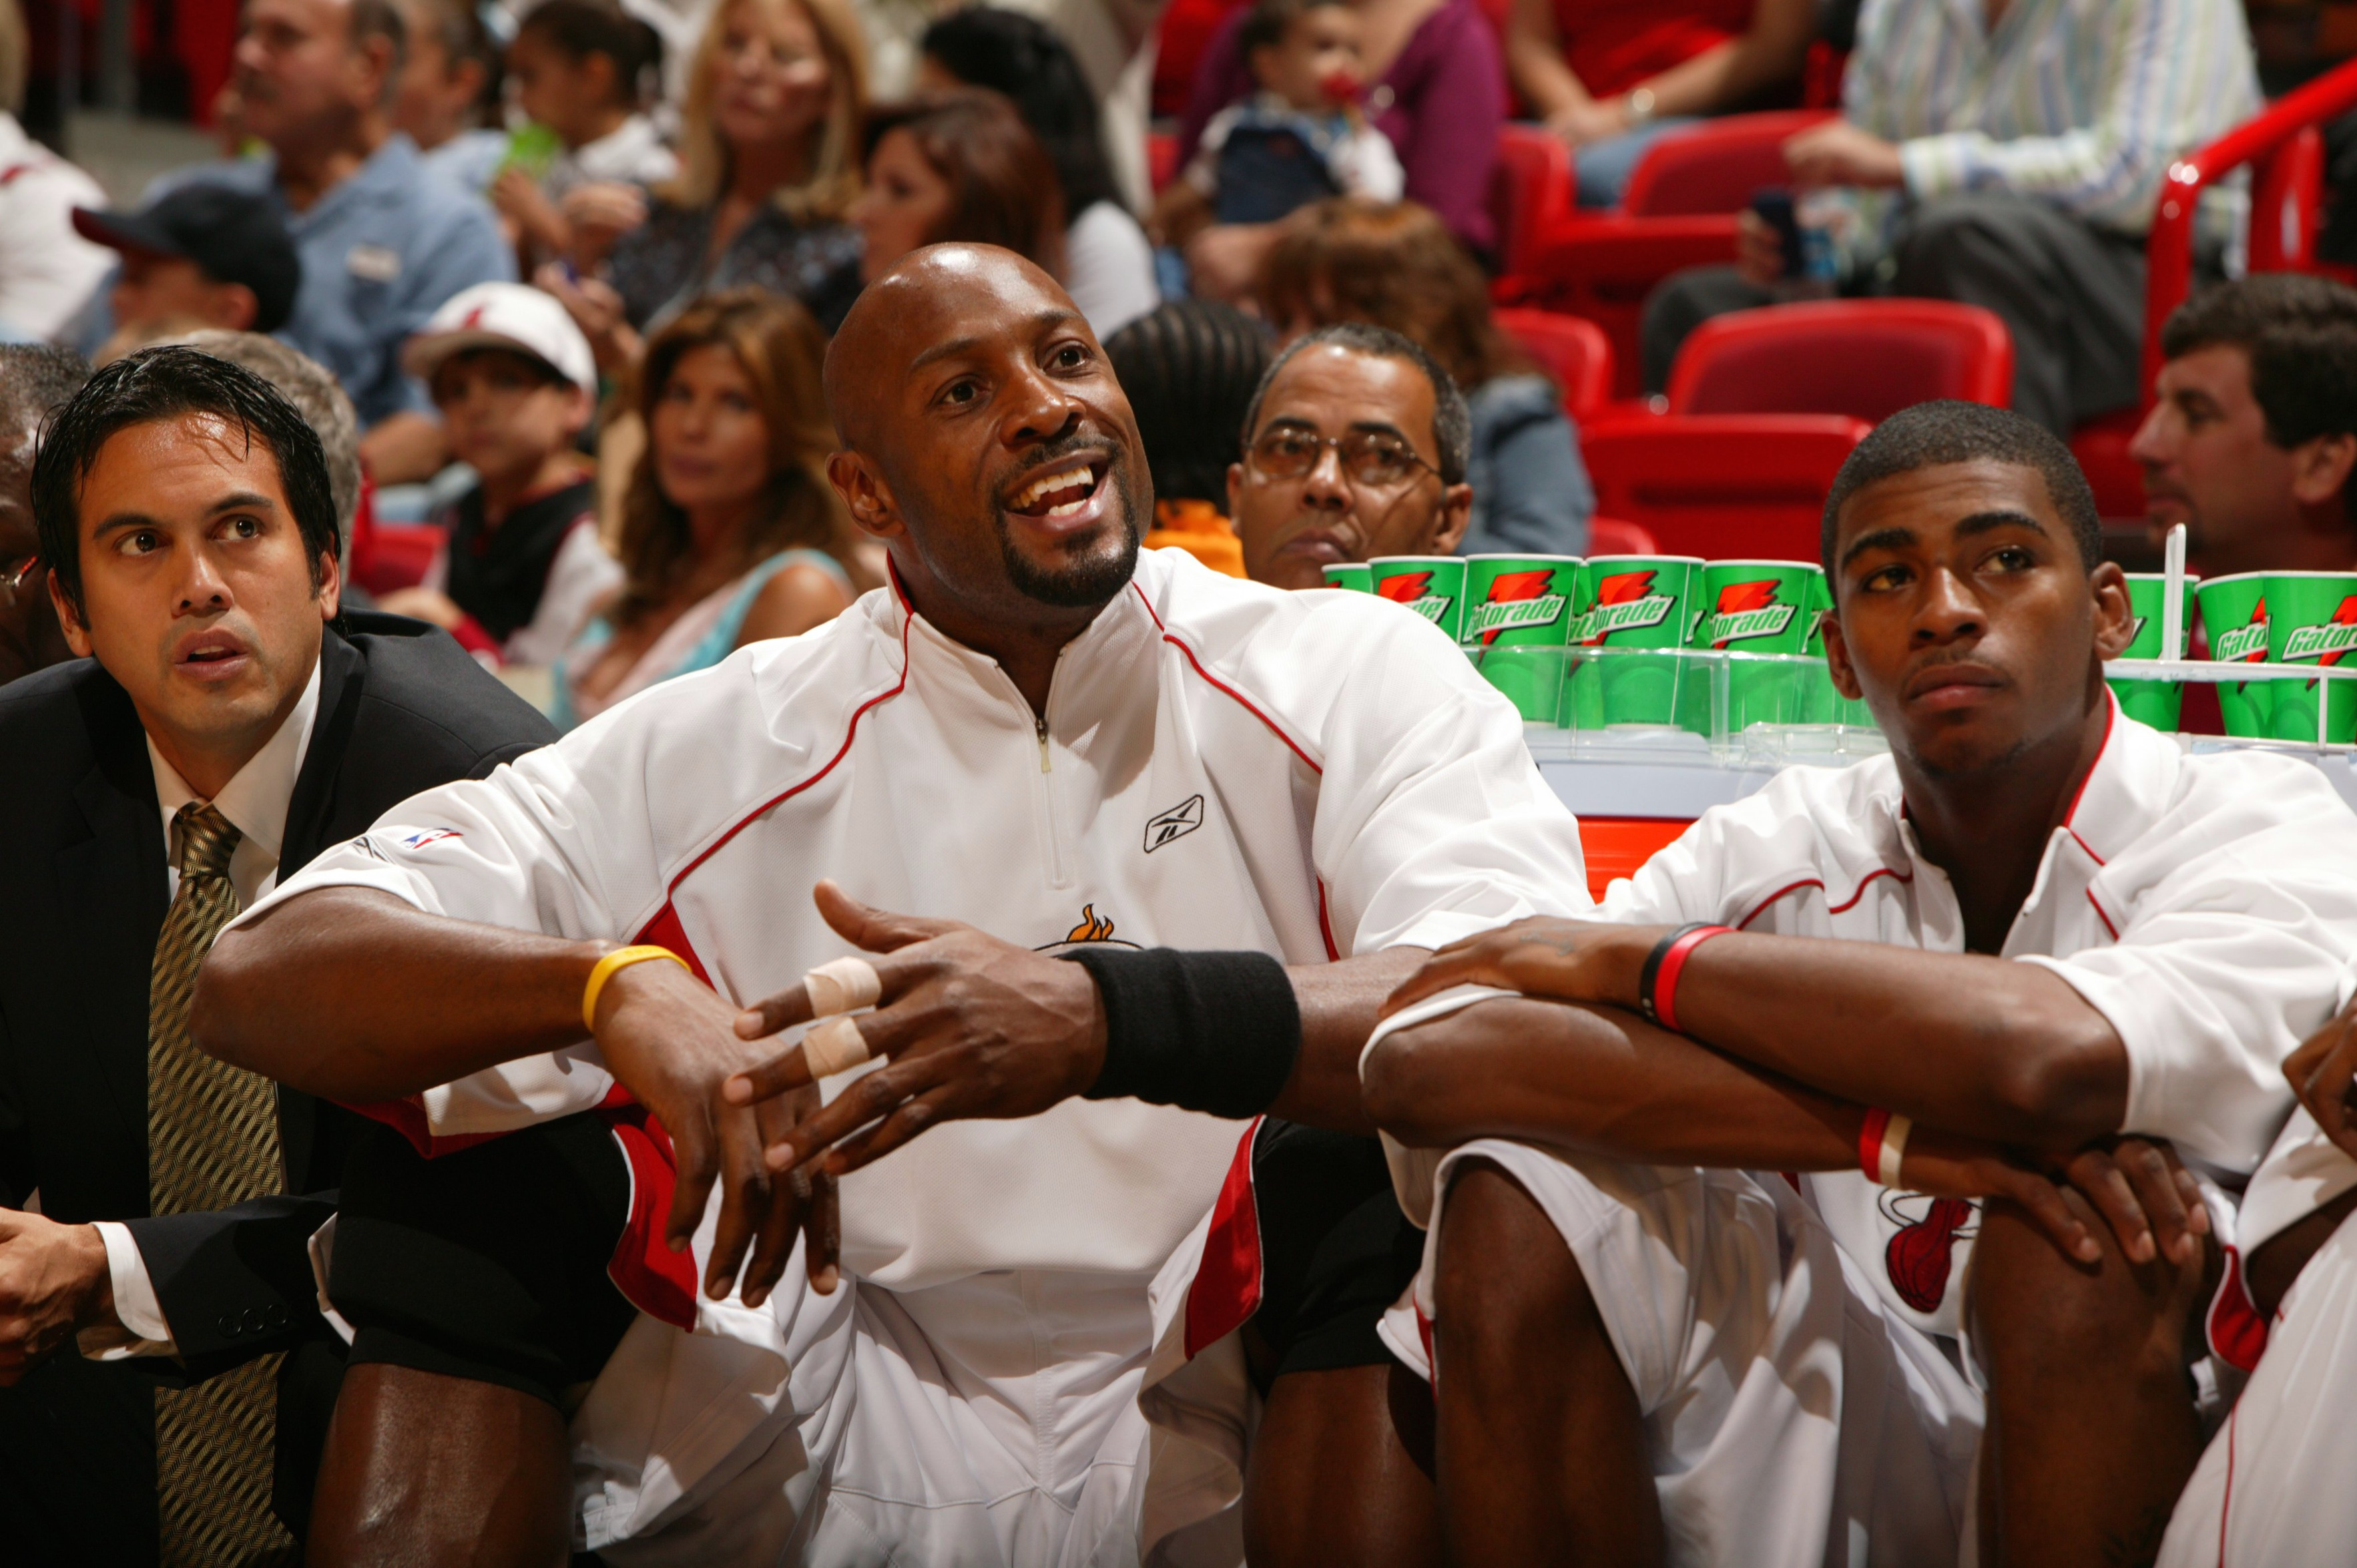 UNITED STATES - OCTOBER 15:  Basketball: Miami Heat Alonzo Mourning (33) and Dorell Wright (1) sitting on bench during preseason game vs Charlotte Bobcats, Miami, FL 10/15/2005  (Photo by Greg Nelson/Sports Illustrated/Getty Images)  (SetNumber: X74449 TK1)